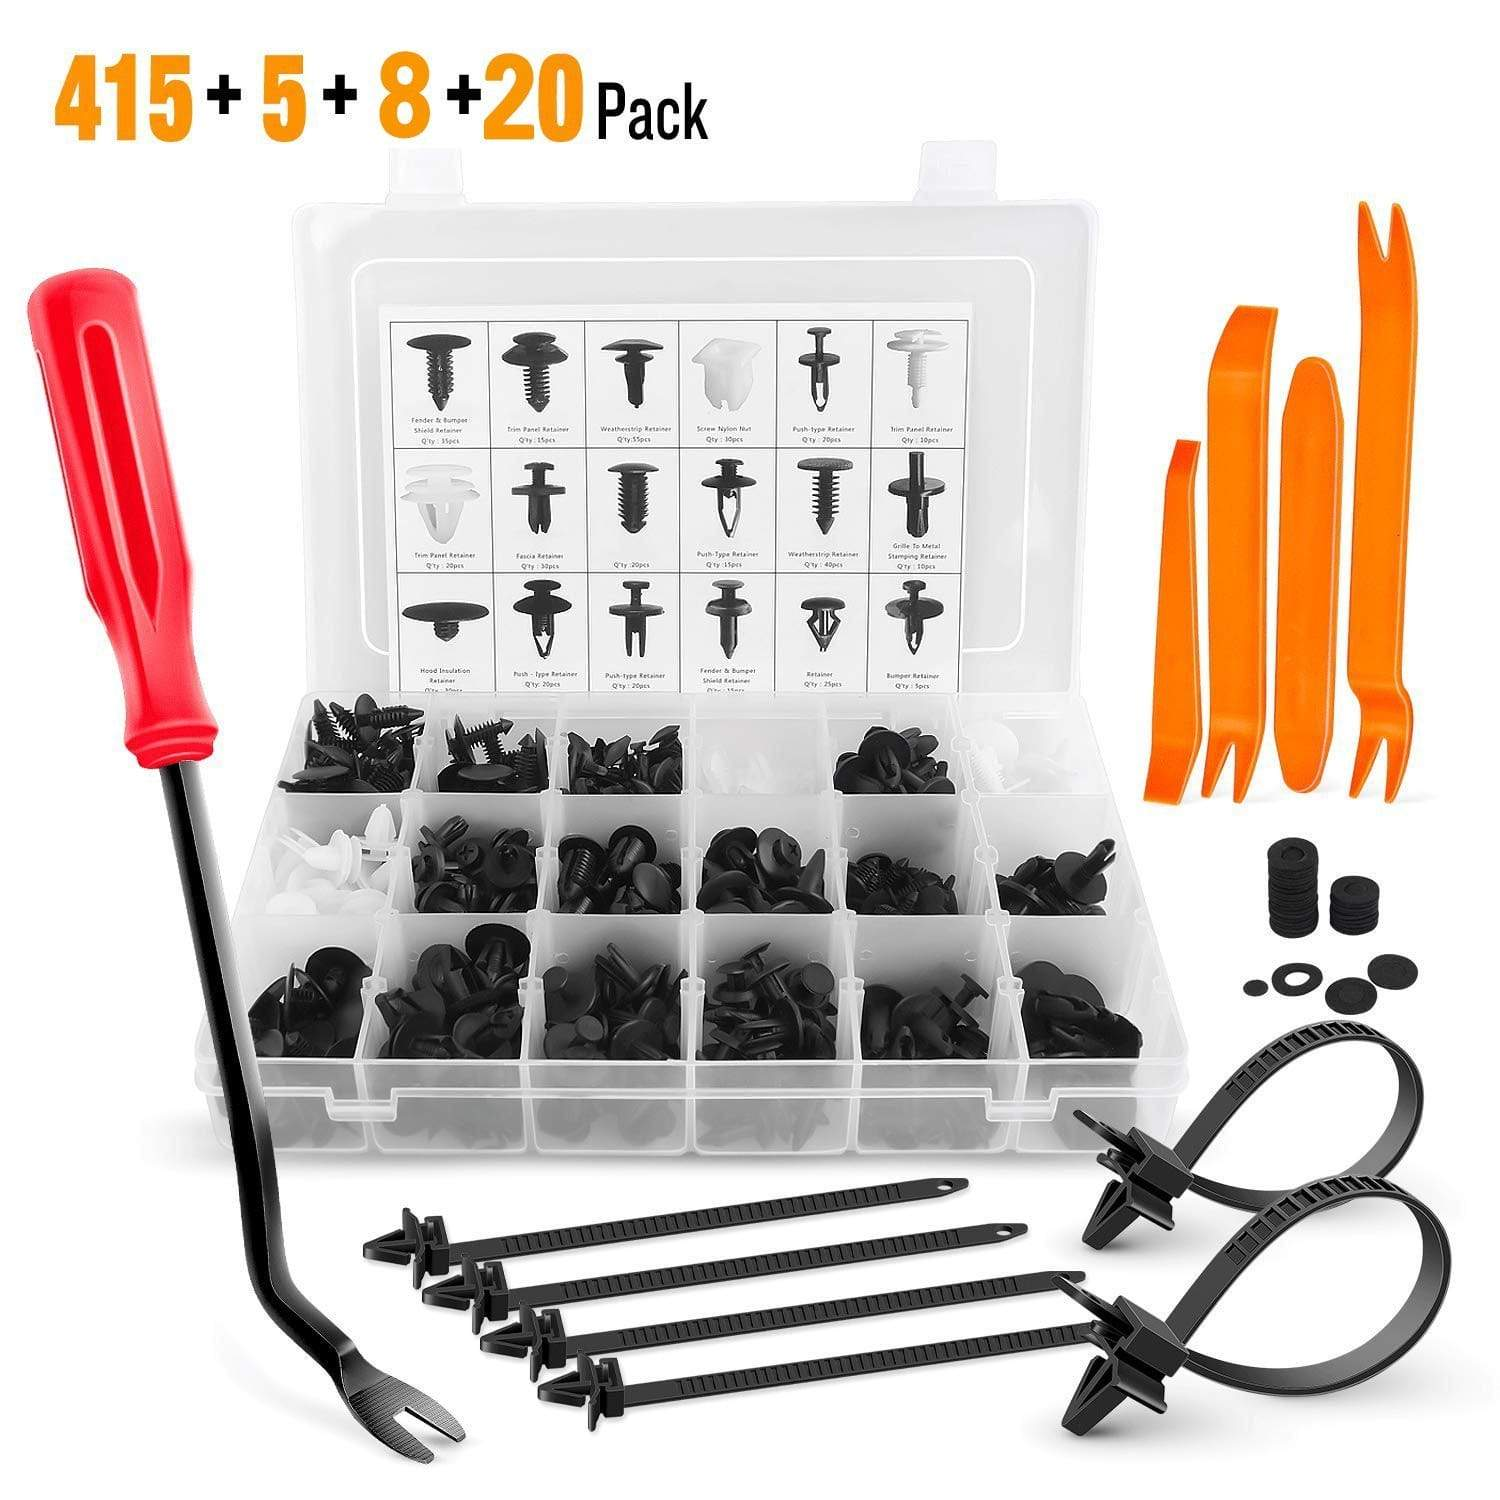 Jokared Handmade Complete Kit - With Tools 415 PCS Auto Fasteners Kit